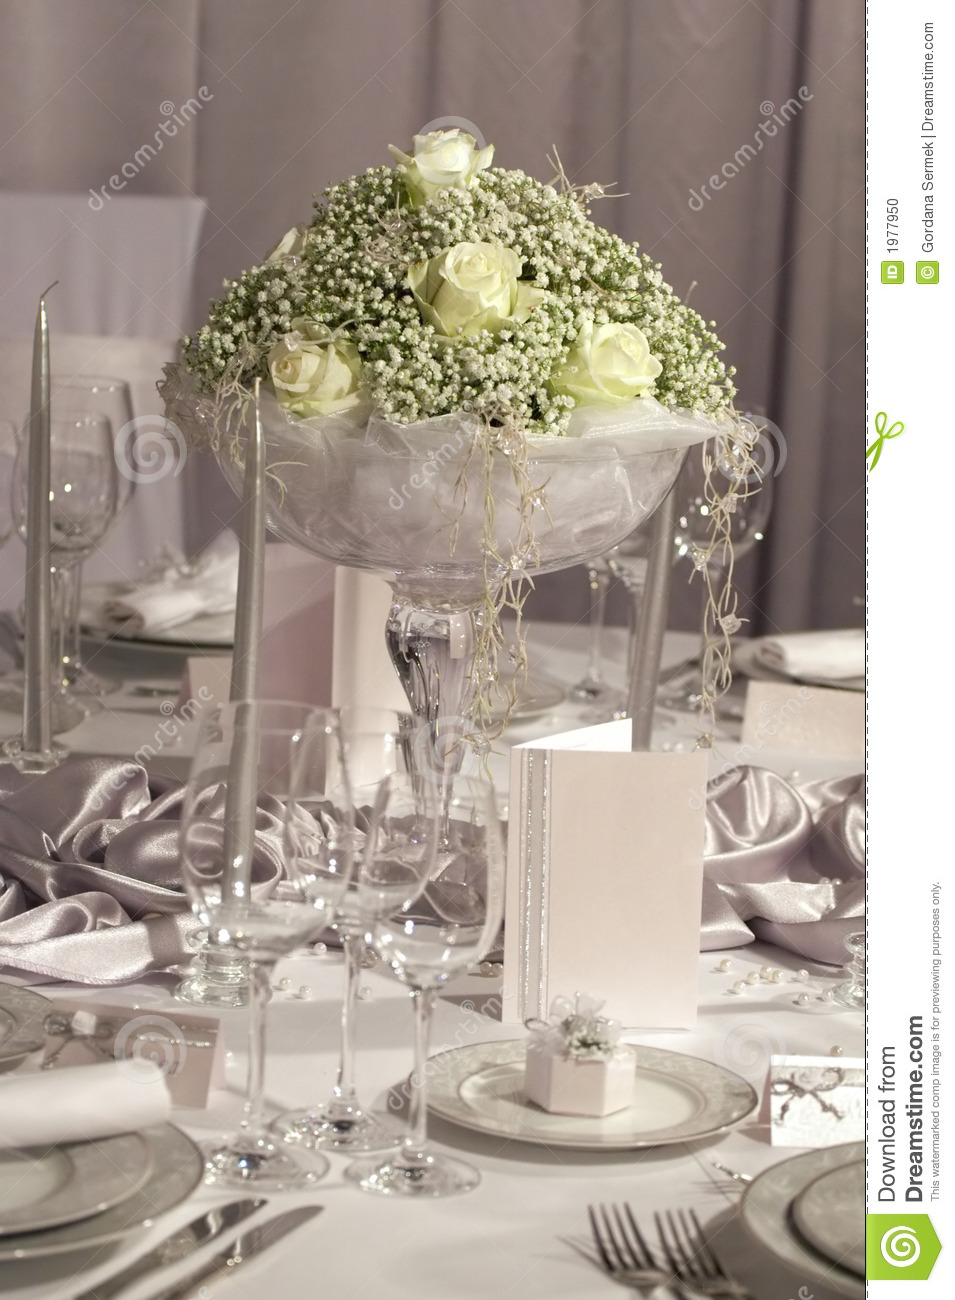 Table Set For Wedding Dinner Stock Photo Image 1977950